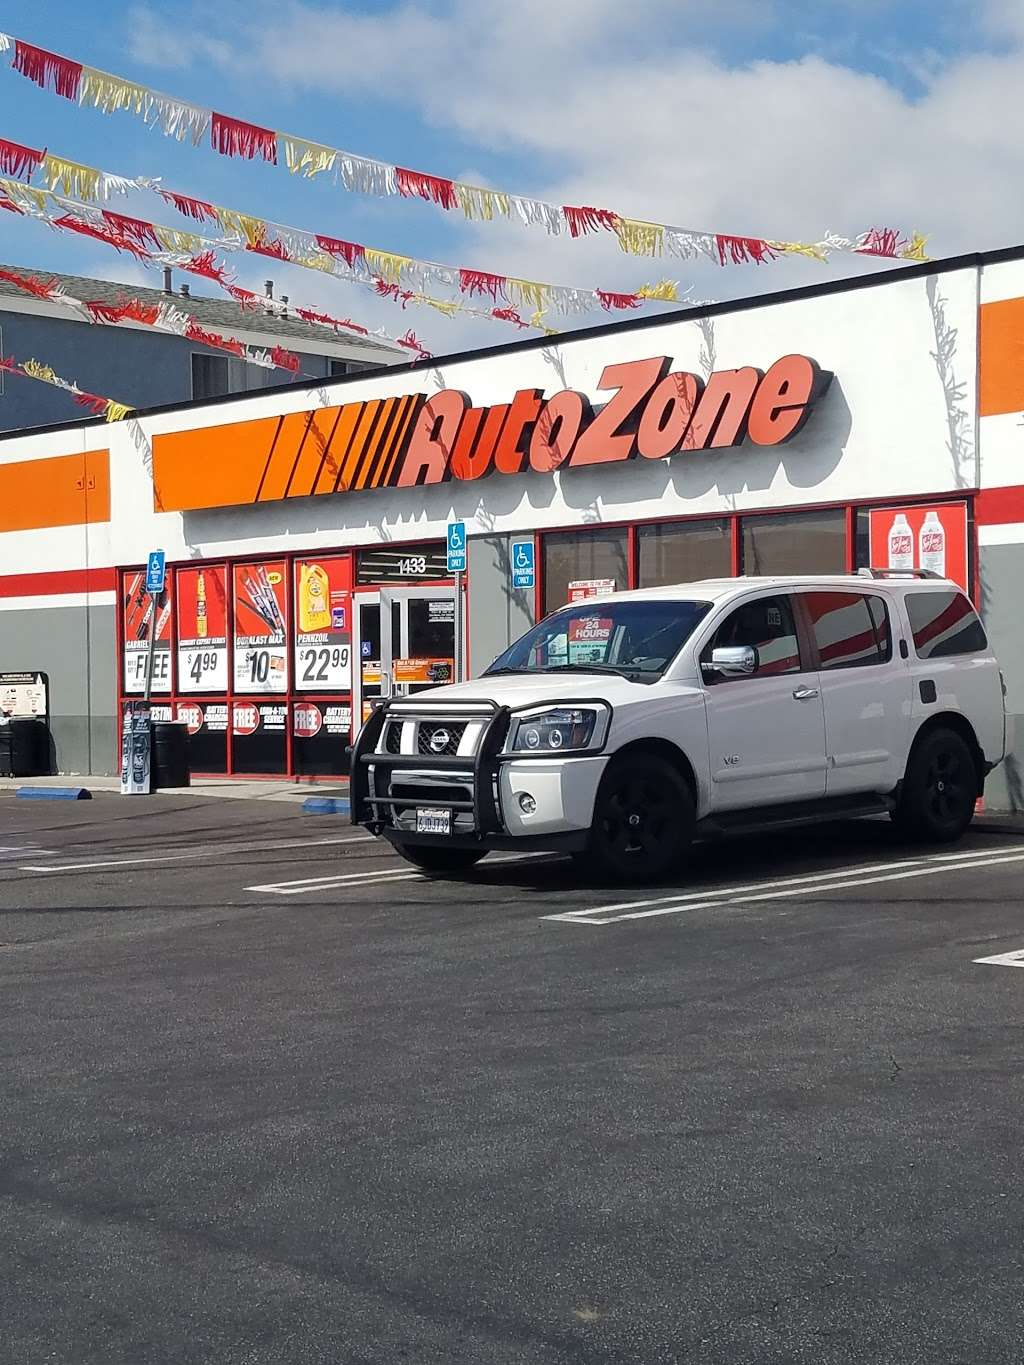 AutoZone Auto Parts - car repair  | Photo 1 of 10 | Address: 1433 W Carson St, Torrance, CA 90501, USA | Phone: (310) 328-4843